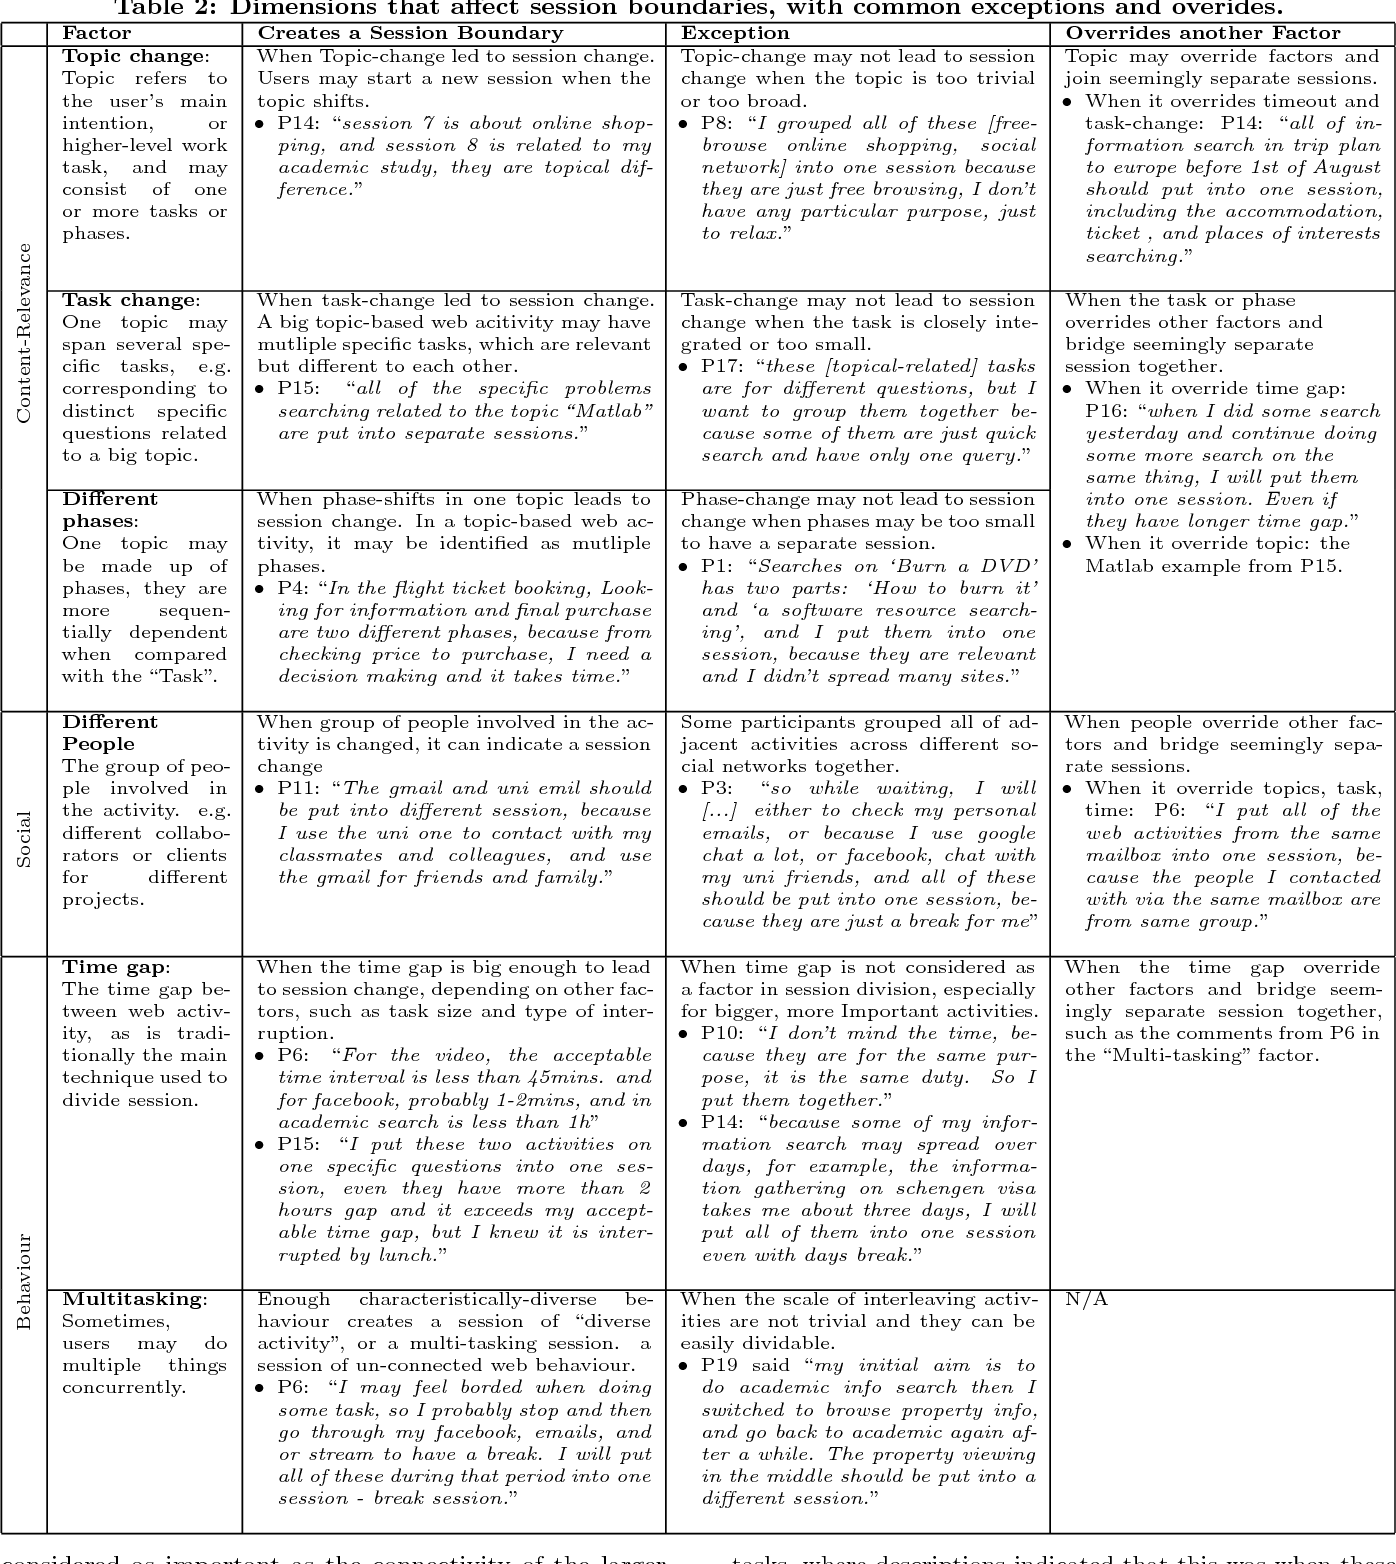 Table 2 from A user defined taxonomy of factors that divide